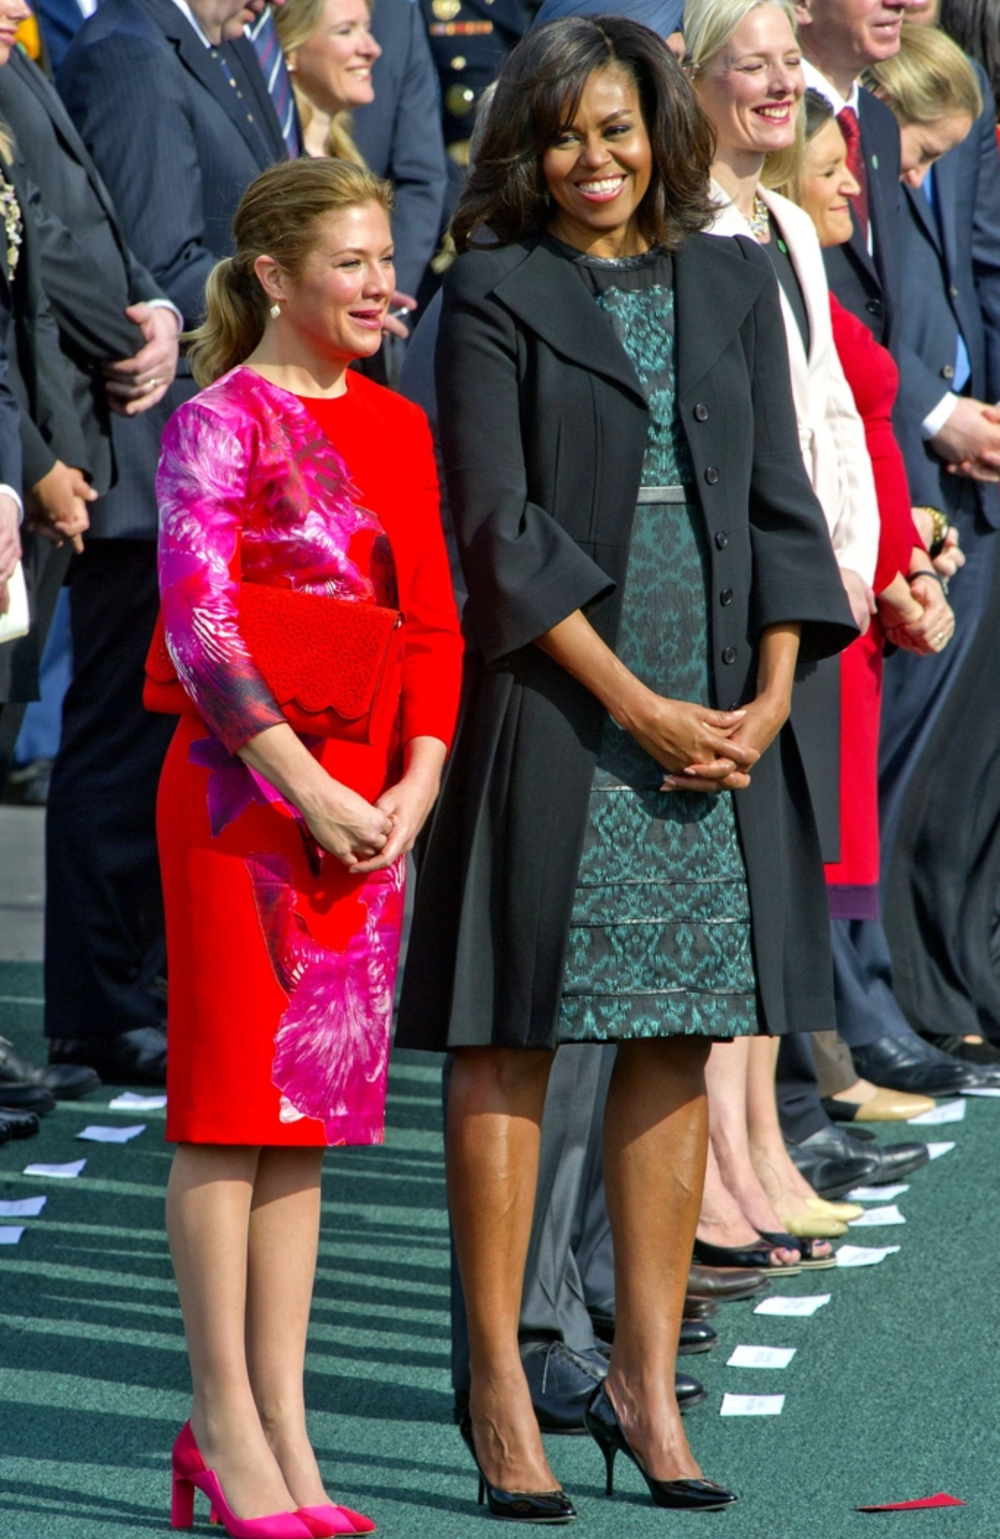 MICHELLE OBAMA IN TANYA TAYLOR